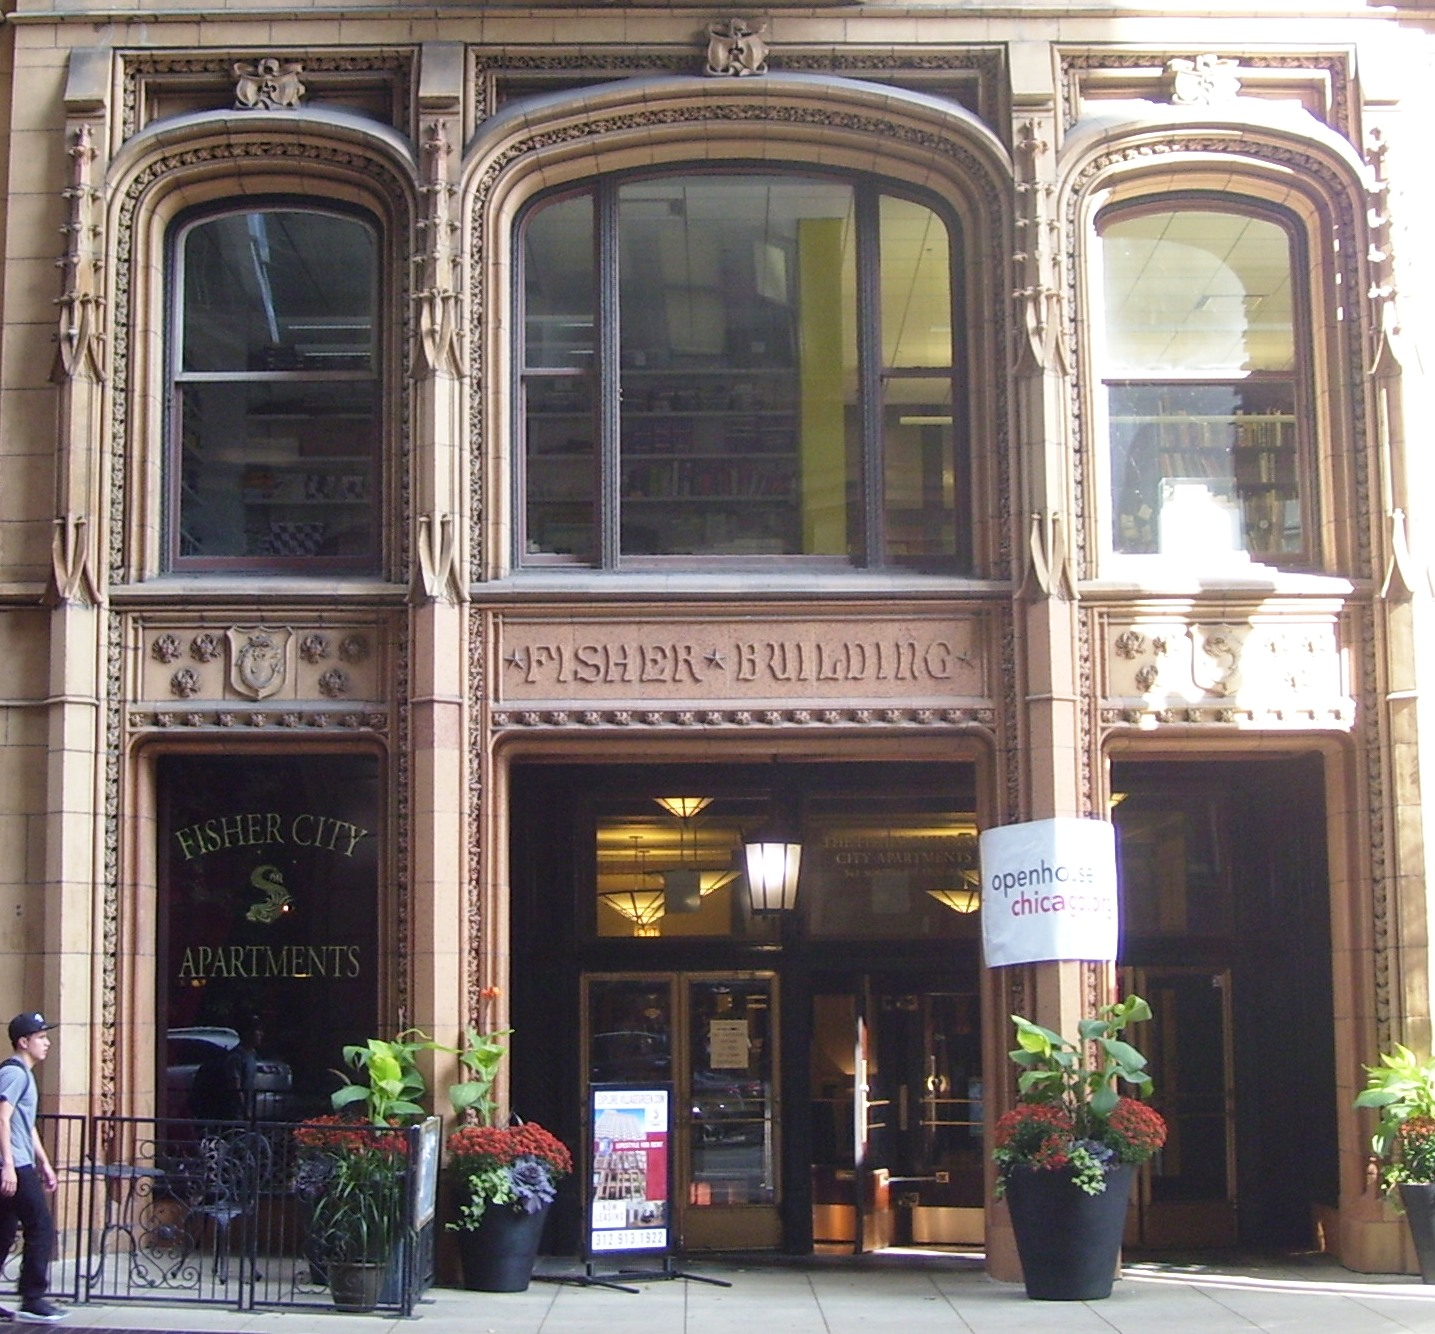 The Fisher Building was completed in 1896.